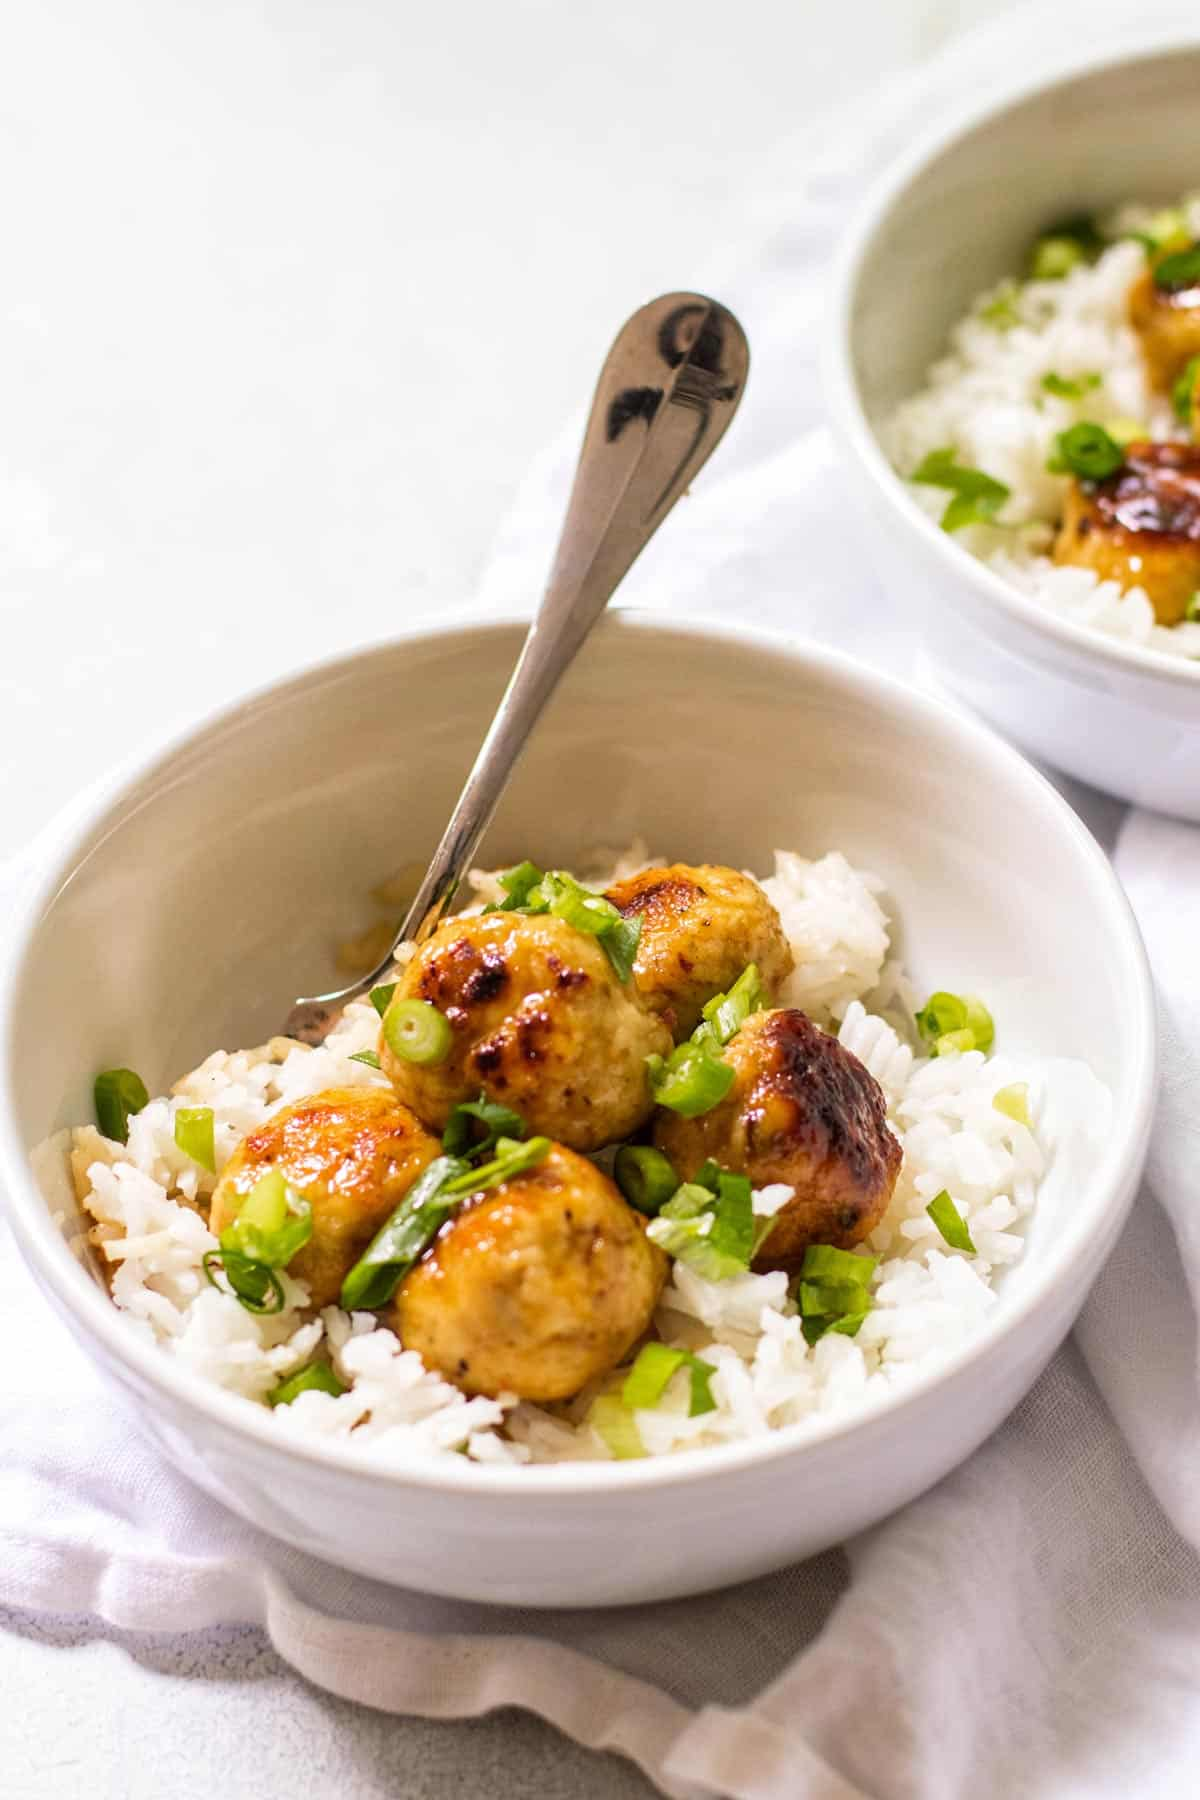 a bowl with rice and orange chicken meatballs.